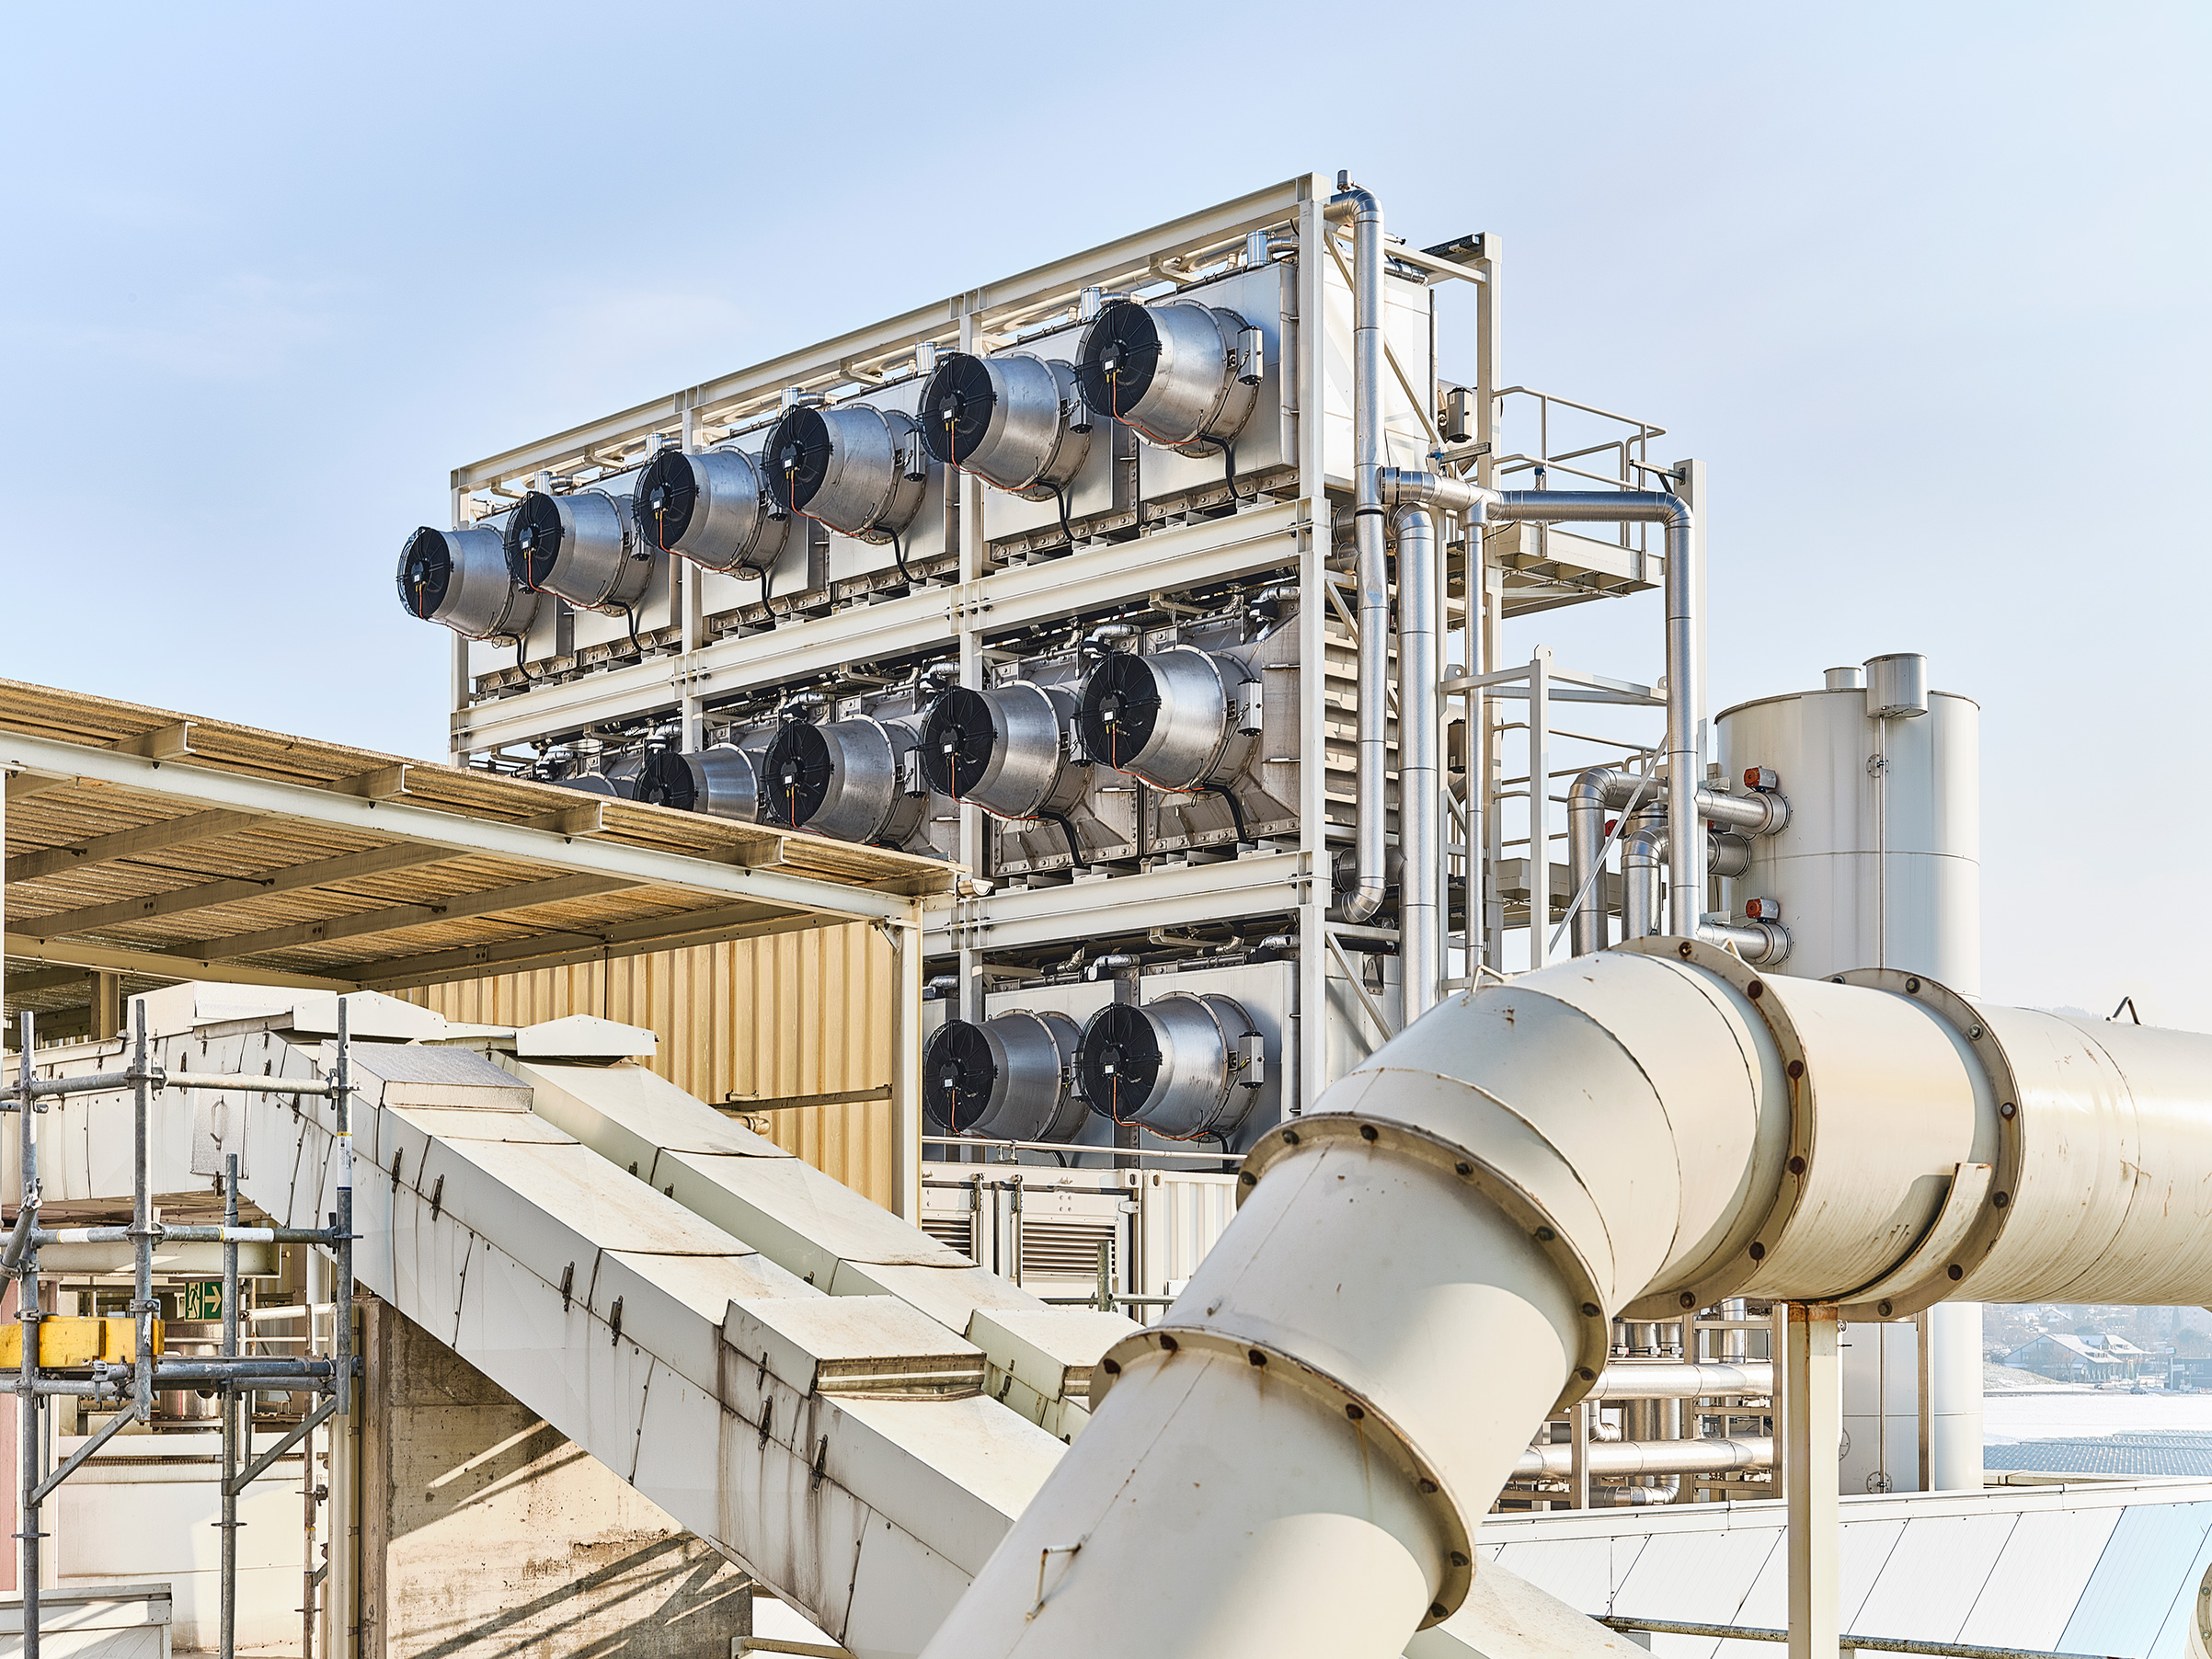 Negative-emissions plants like this one by Swiss firm Climeworks filter CO₂ directly out of the air